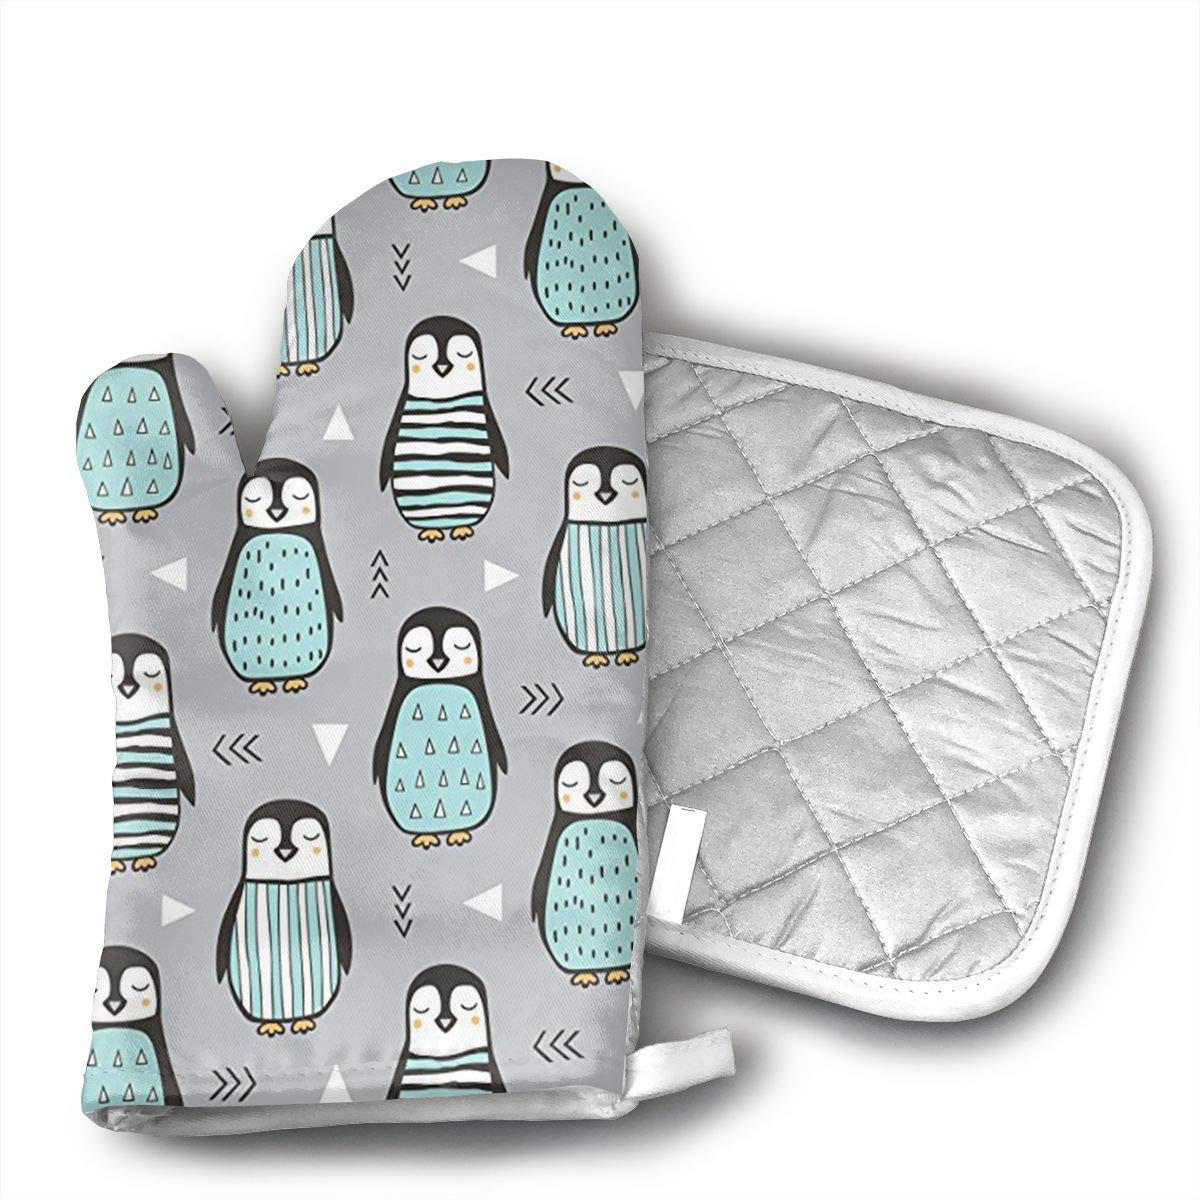 Xayeu Penguins with Sweater Geometric Baking Anti-Hot Gloves Oven Microwave Mitts Pot Holder Mat